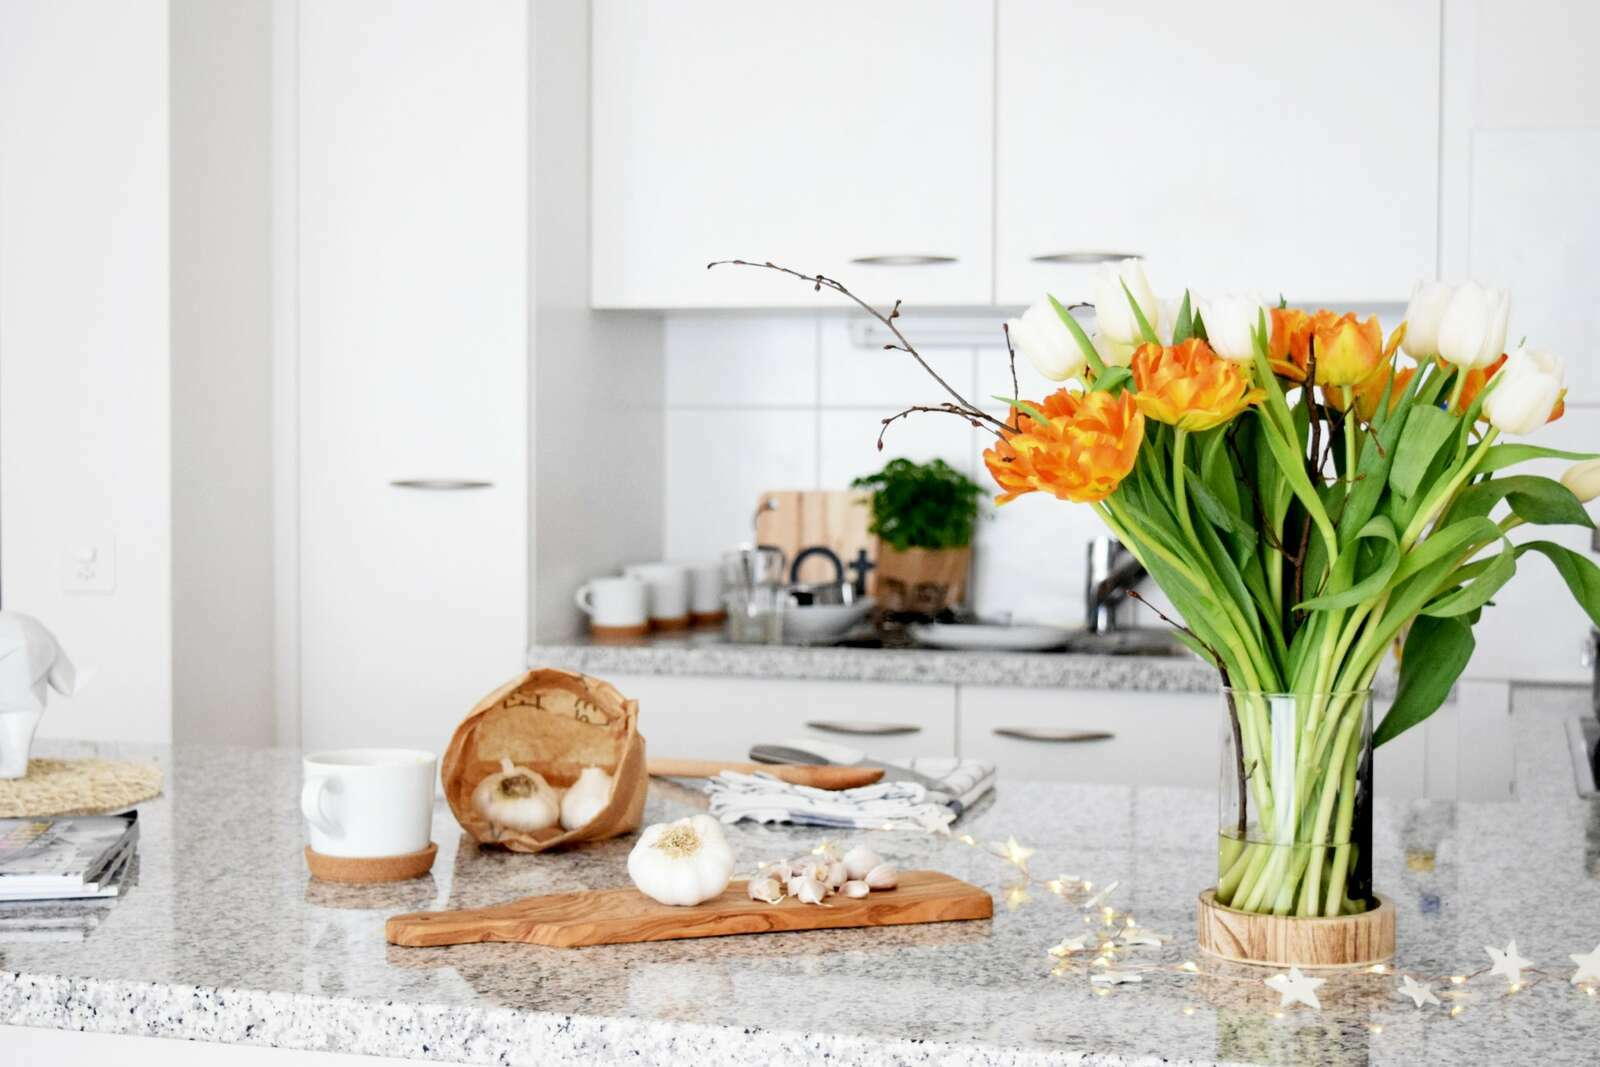 #kitchen #decoration #tulip